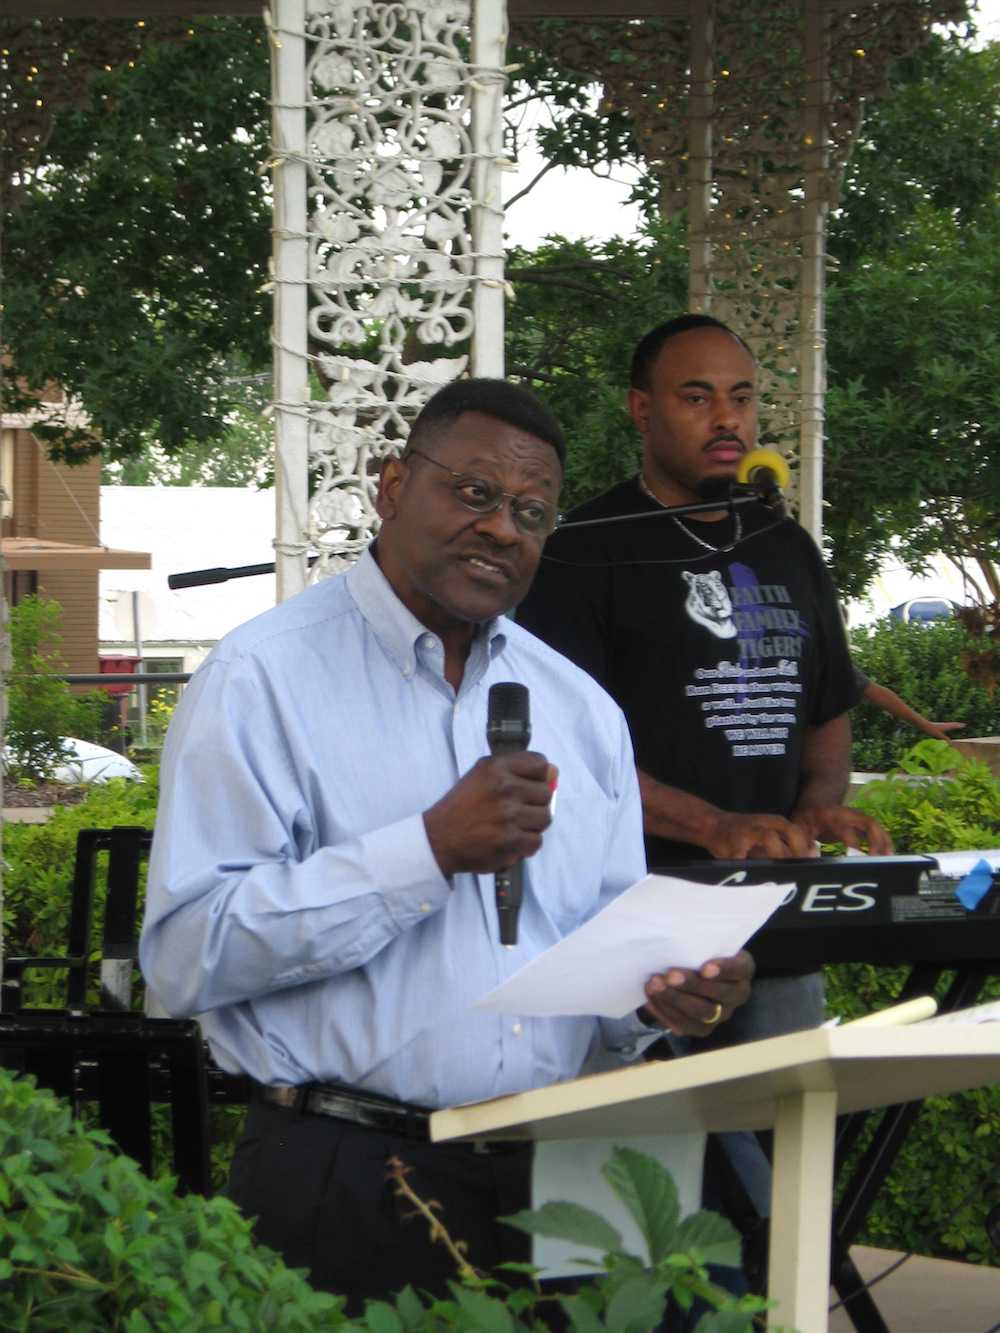 r. Bishop Curry speaking at FCGS Juneteenth program on June 20, 2016